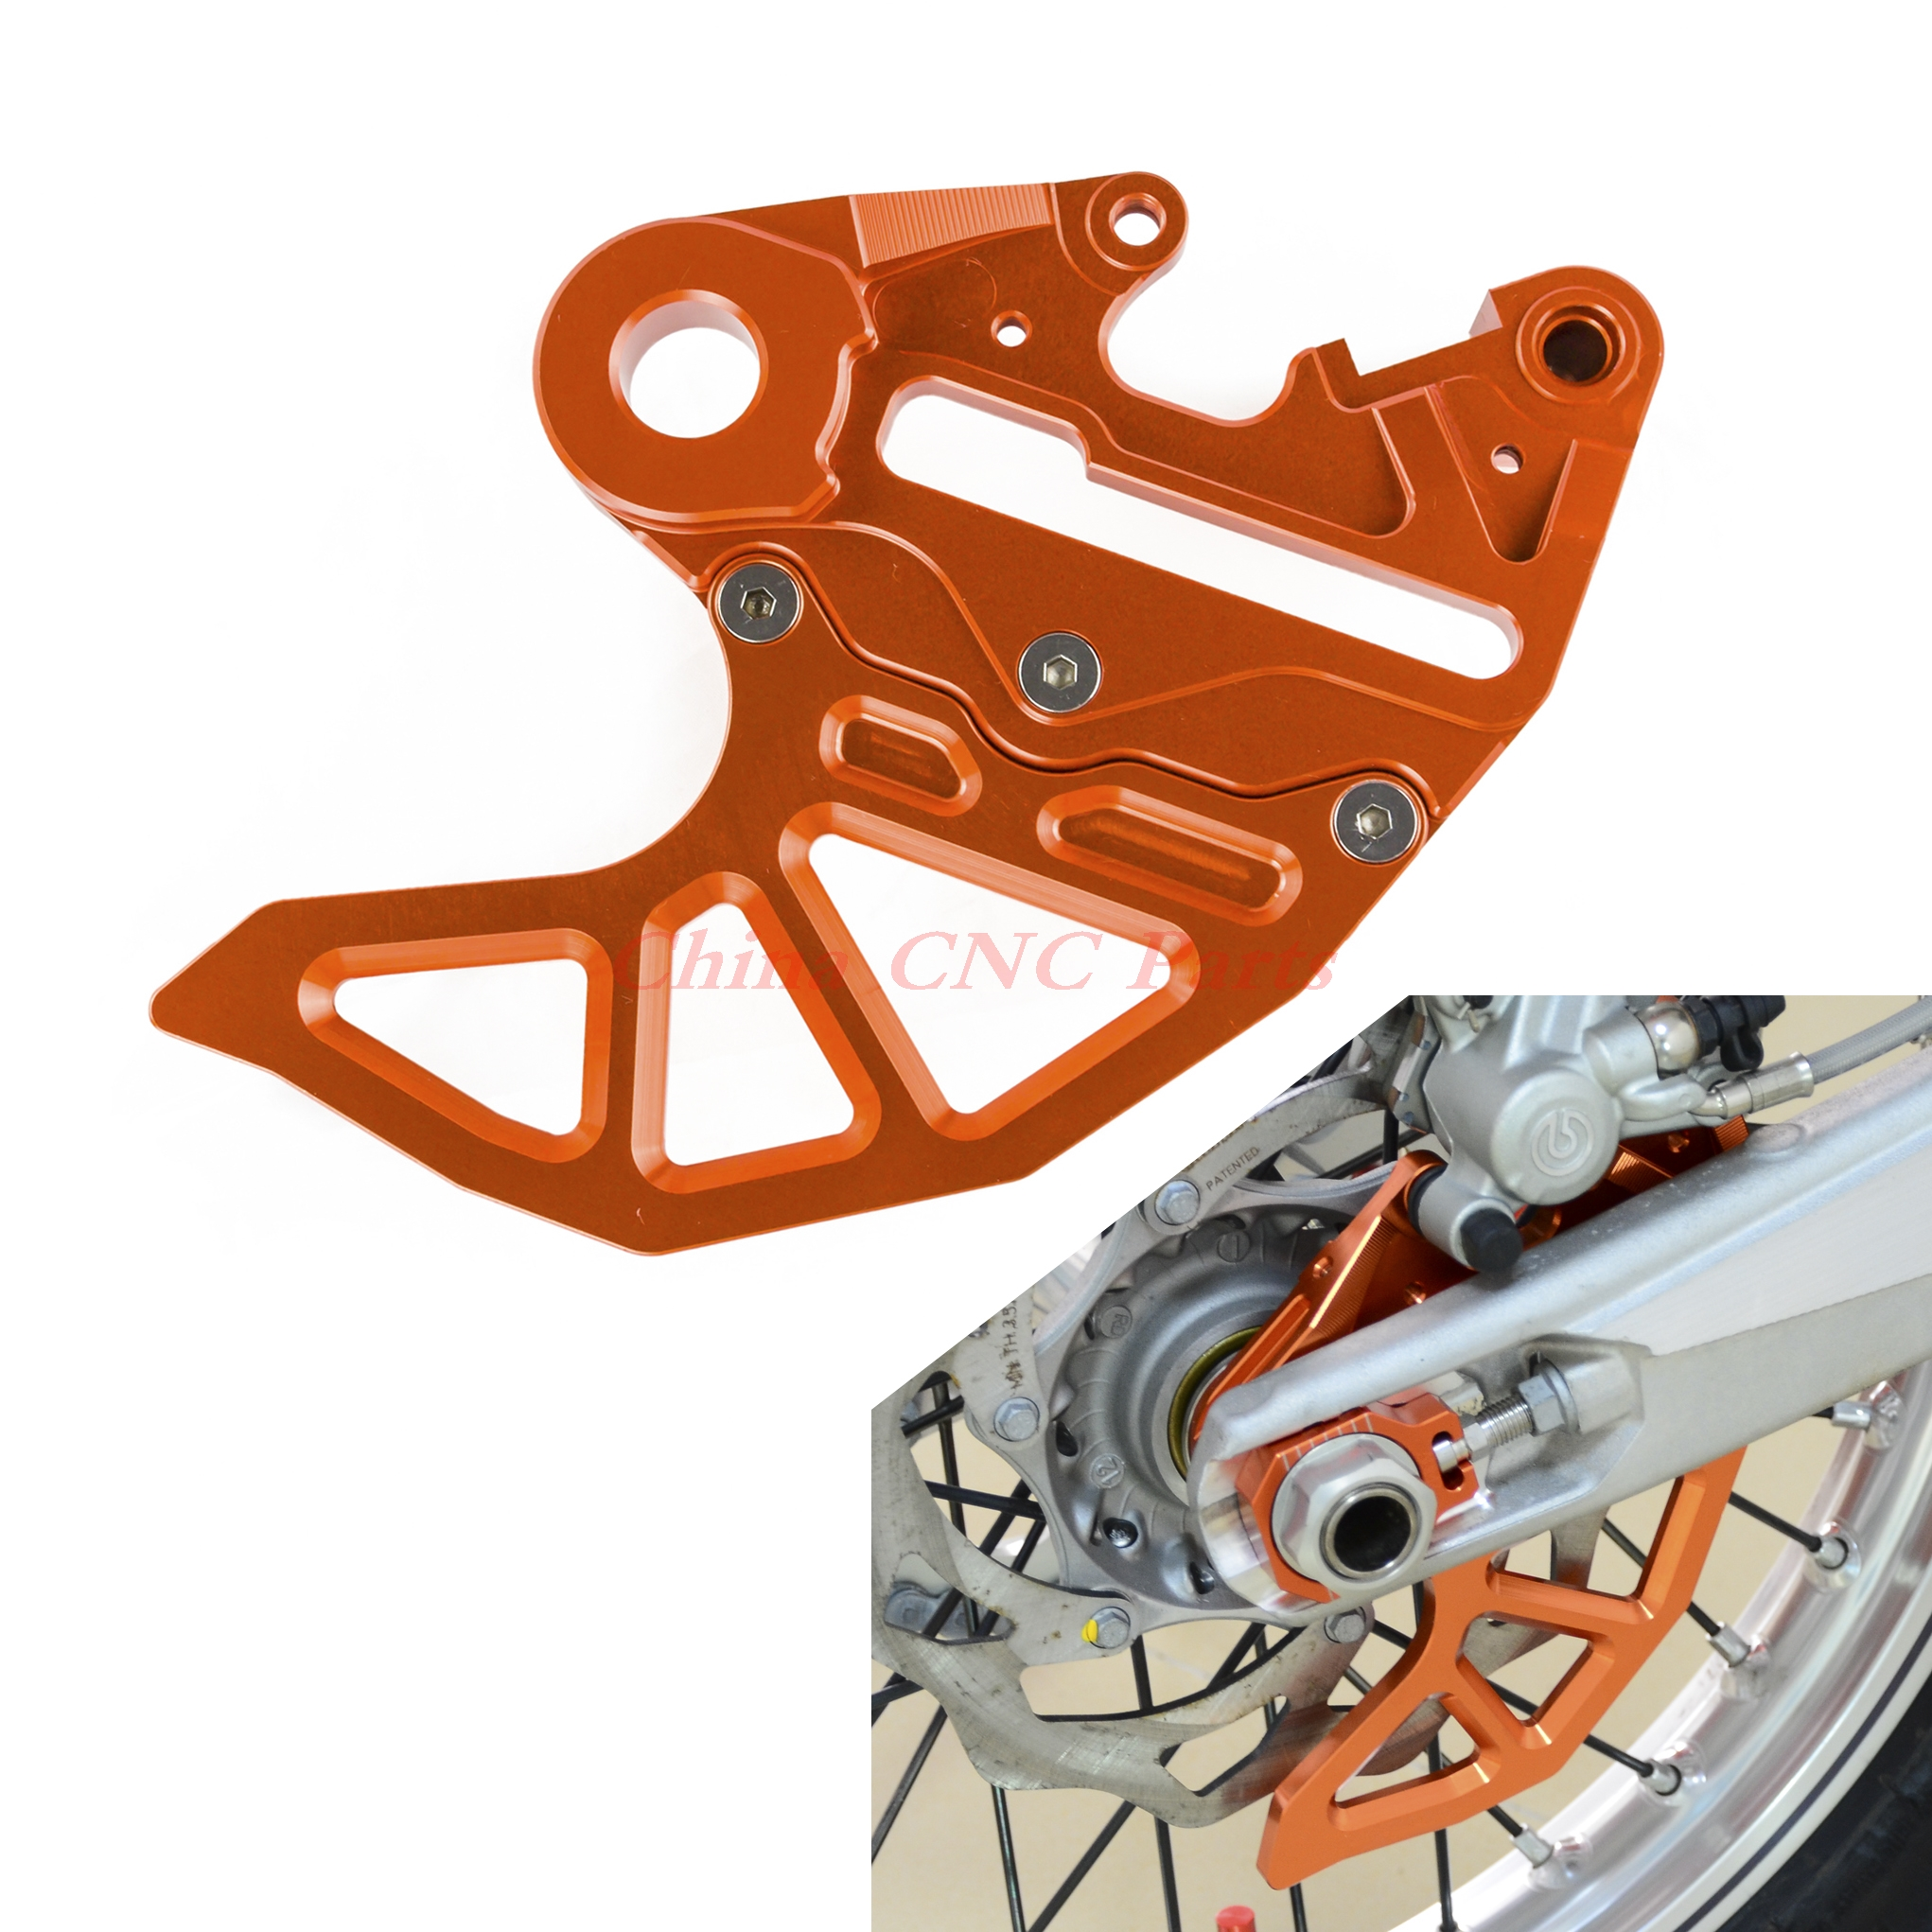 nicecnc brake caliper support with brake disc guard for ktm 125 200 250 300 390 450